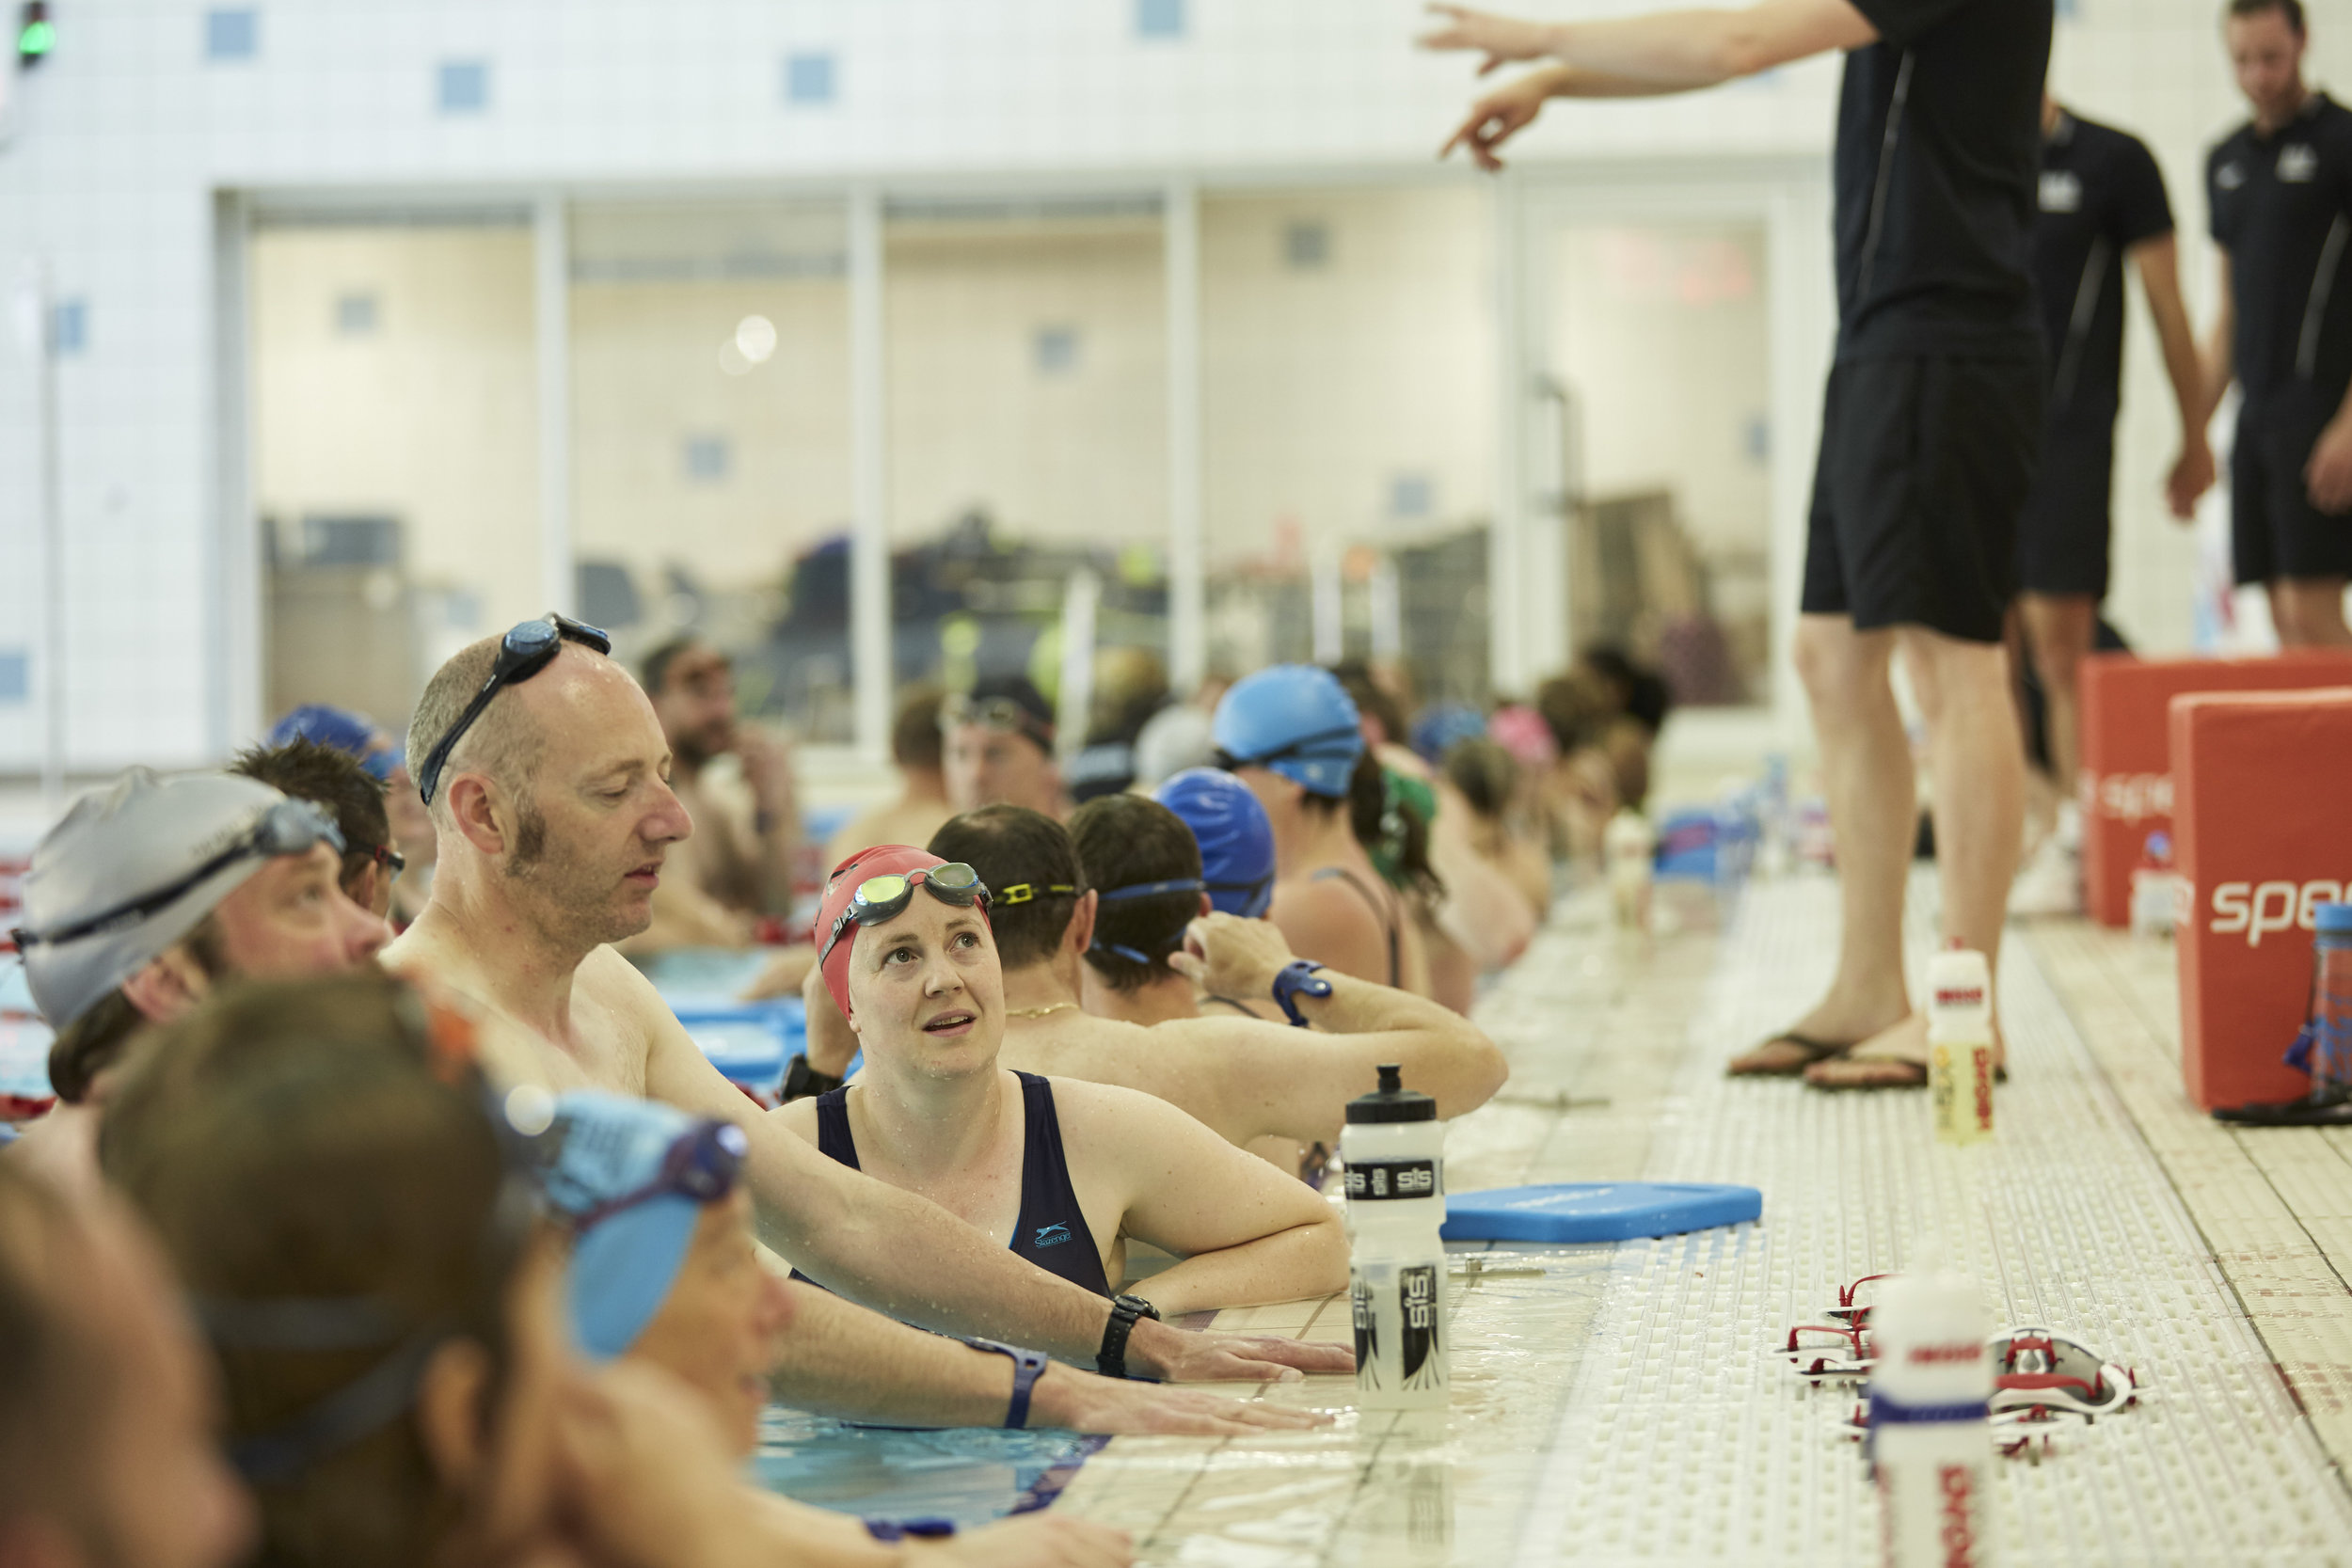 documentary, reportage and portraits taken at Speedo swimming sports events for PR and editorial. amateur swimmers are taught by olympic and professional athletes how to train